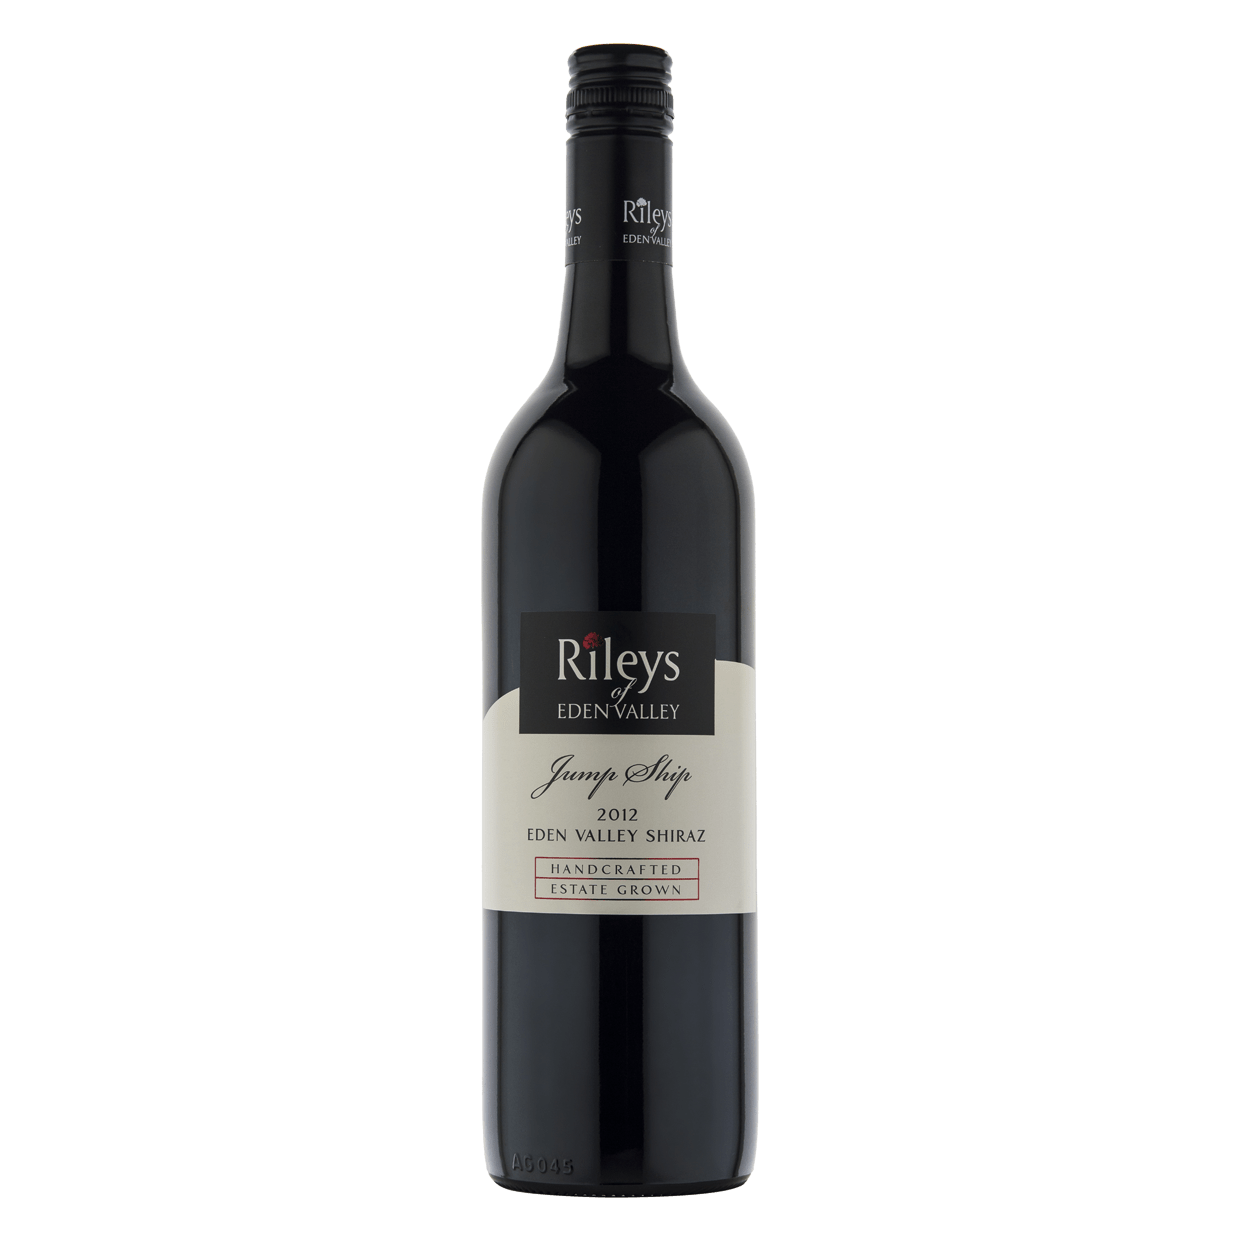 Rileys of Eden Valley Shiraz 2012 Jump Ship